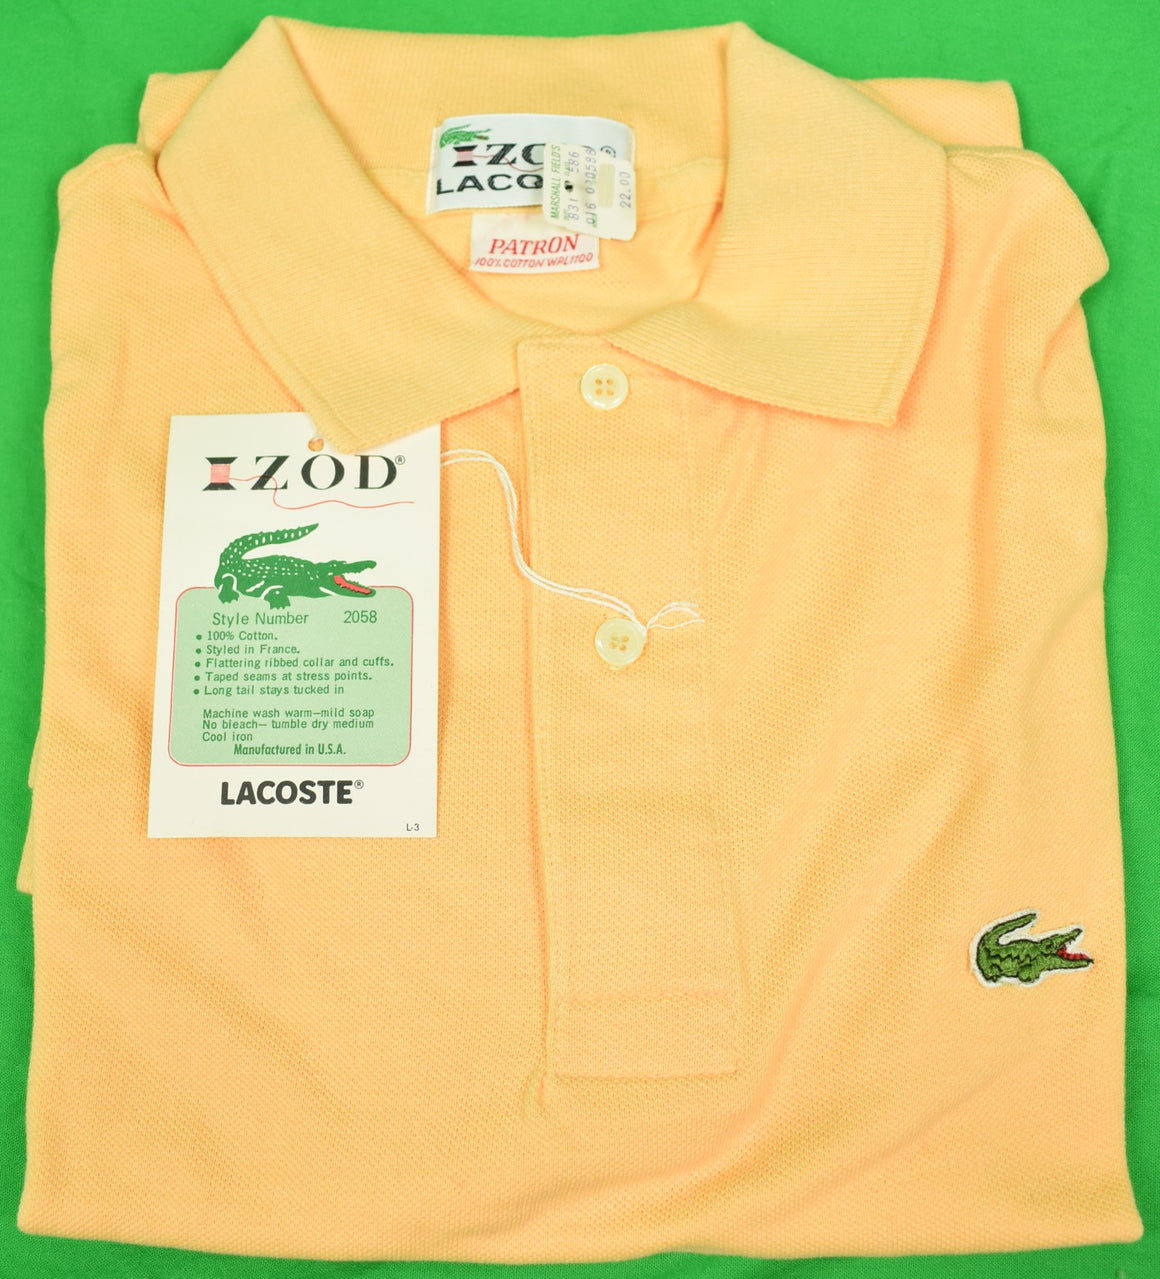 Izod Lacoste Melon Polo Shirt Sz: Patron New w/ Tag!